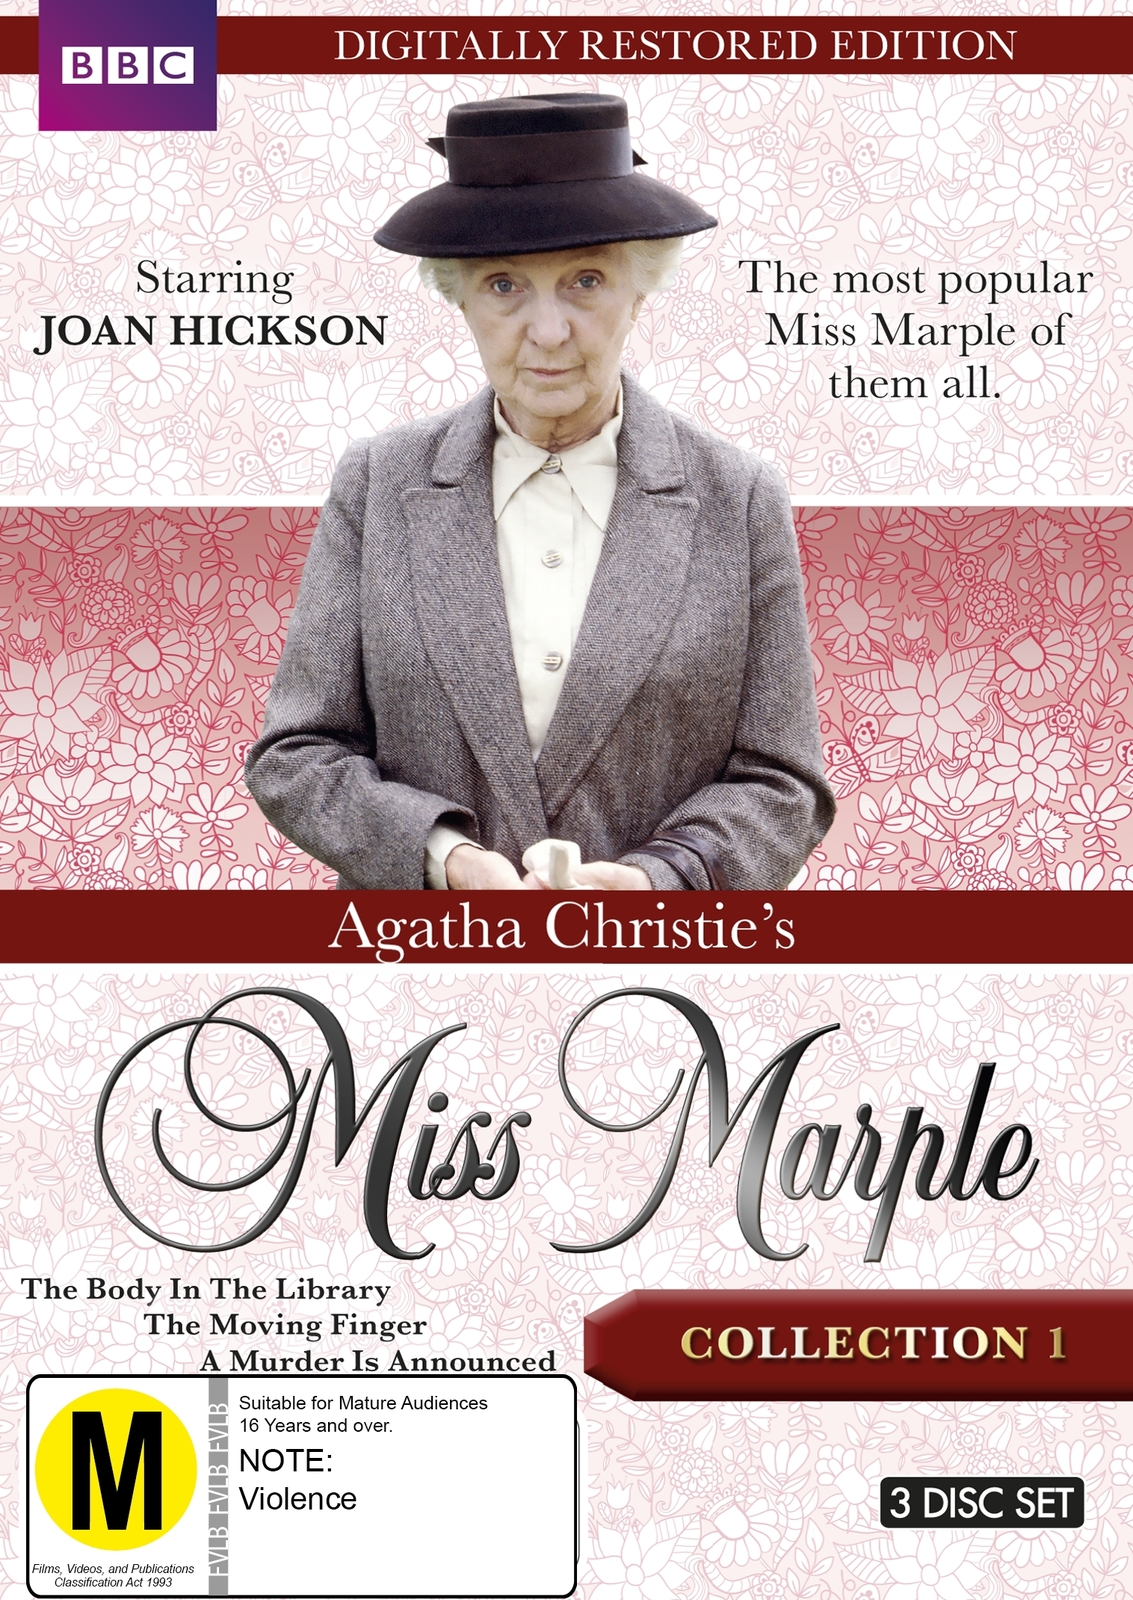 Agatha Christie's Miss Marple - Collection 1 (Restored Edition) on DVD image